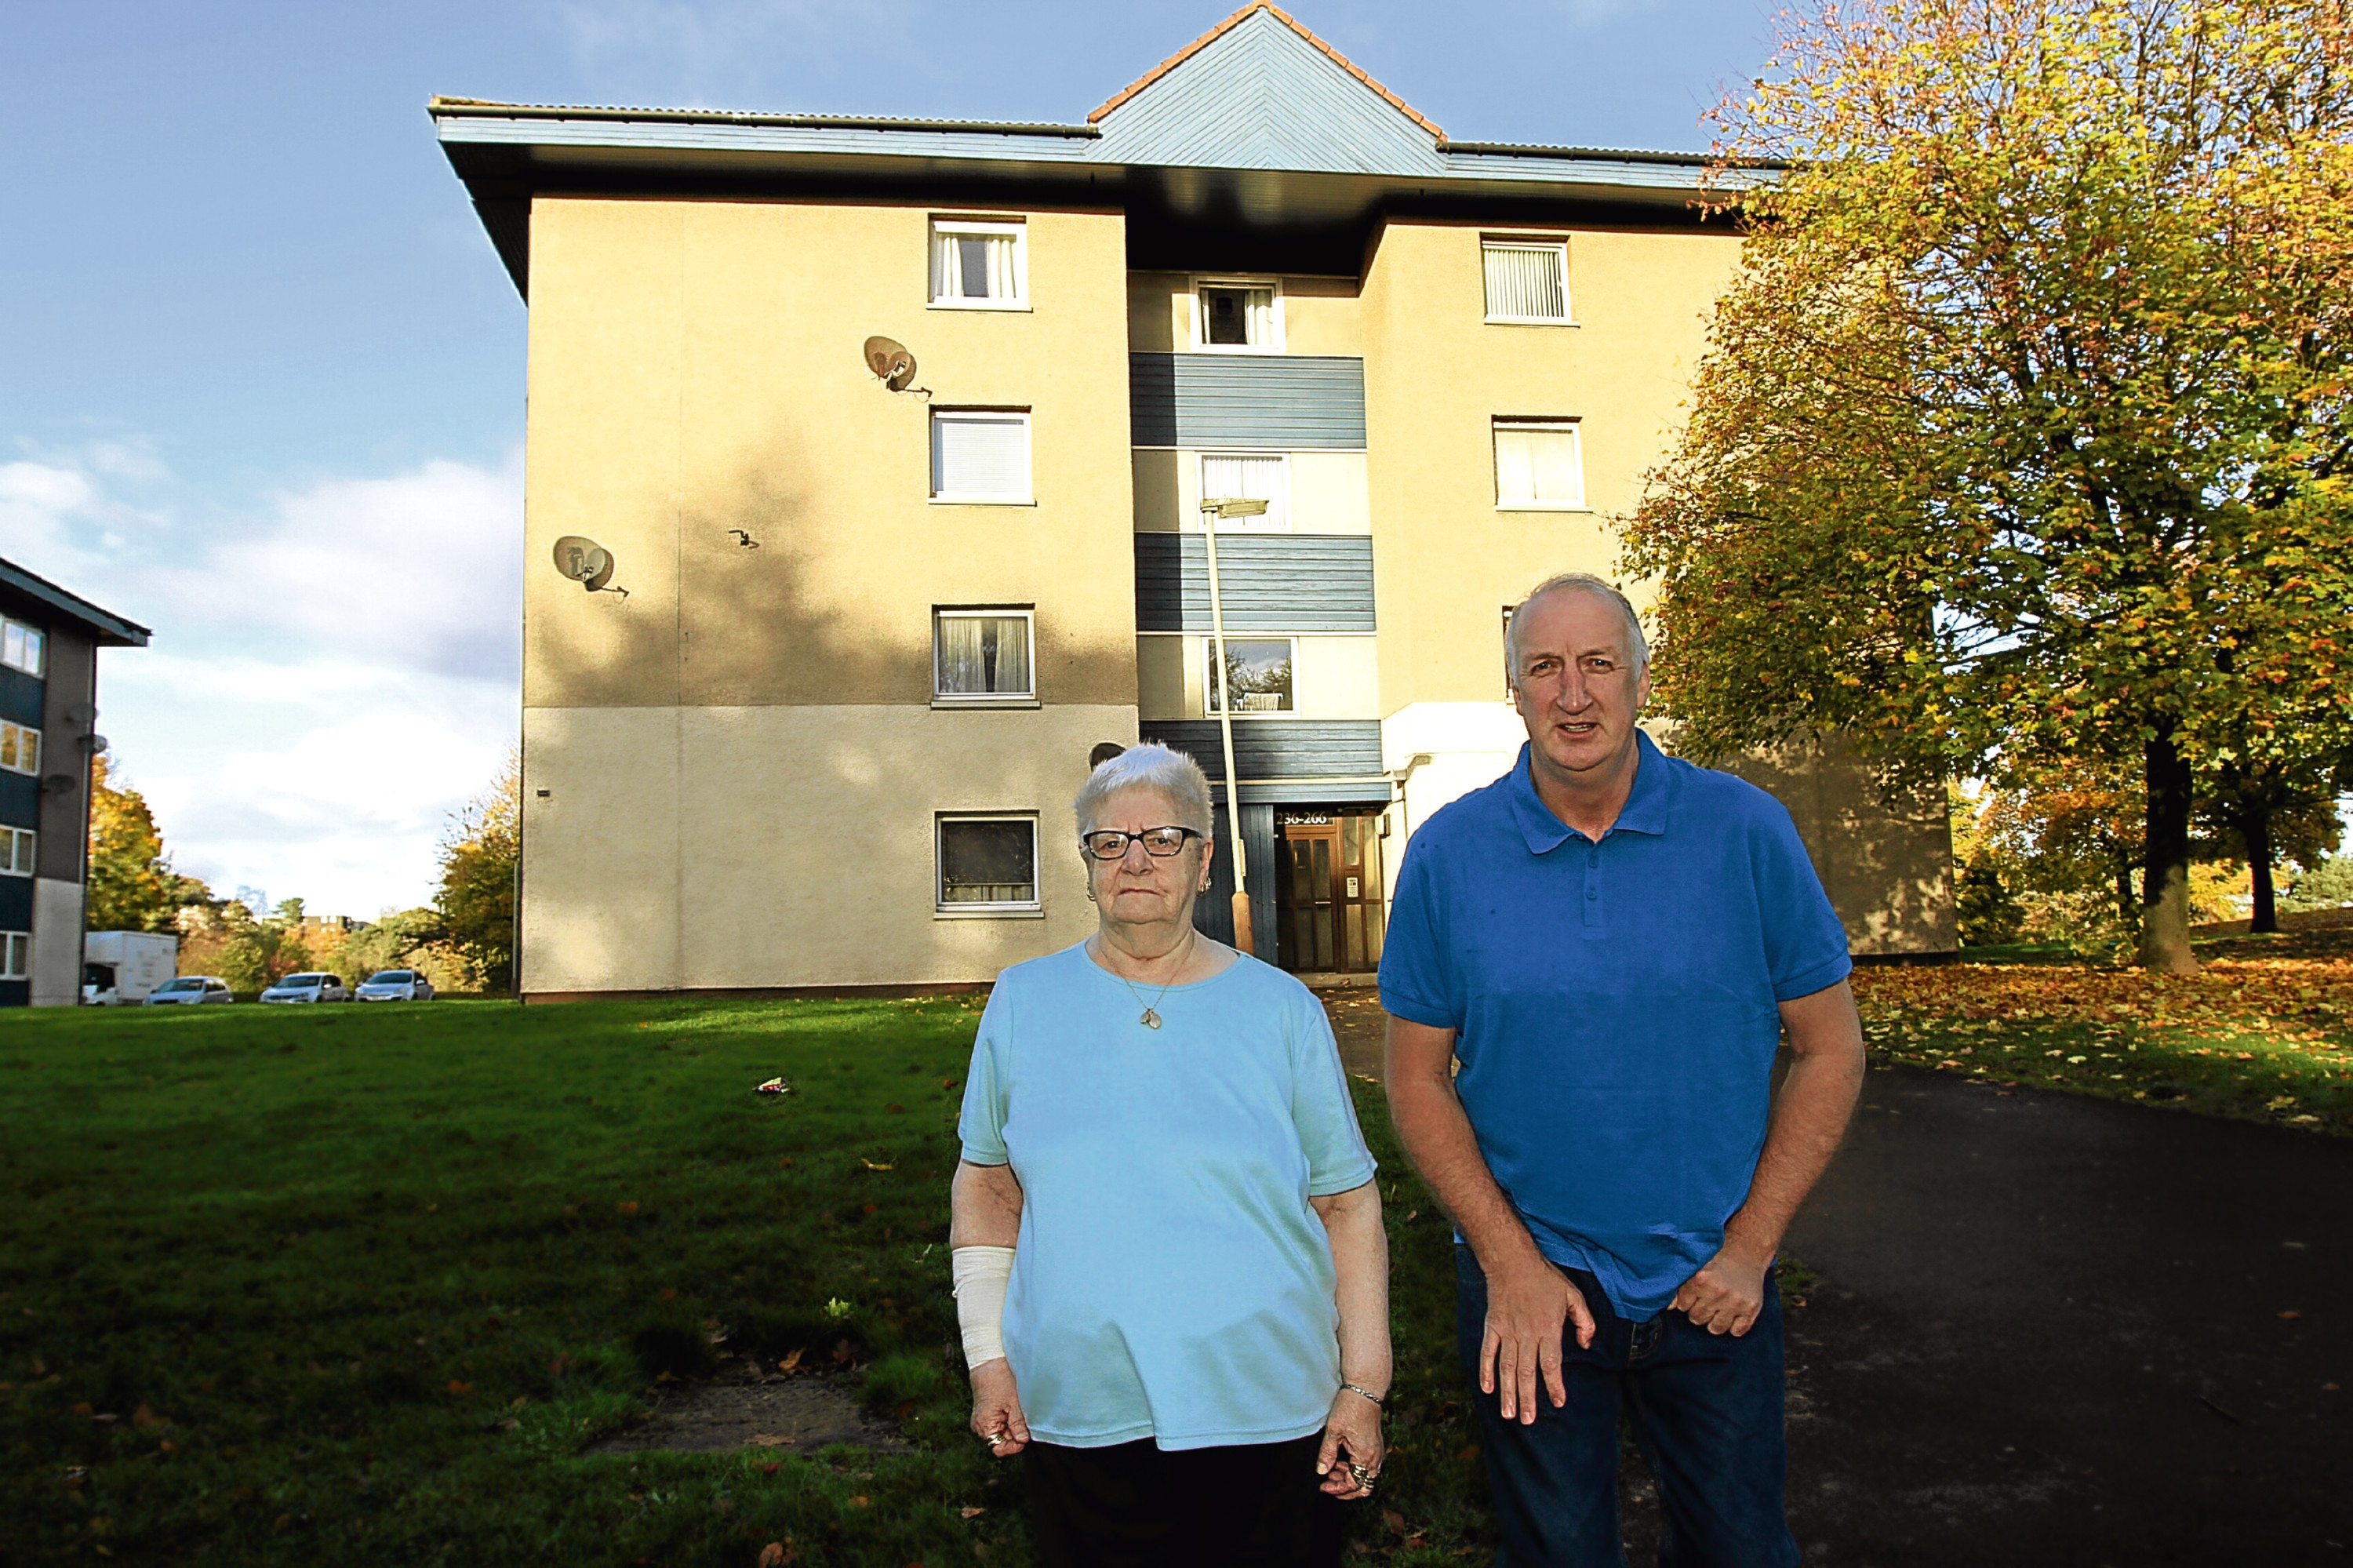 Agnes Keith, 82, and Garry Lawrence, 55, say they are being terrorised in their own flats.